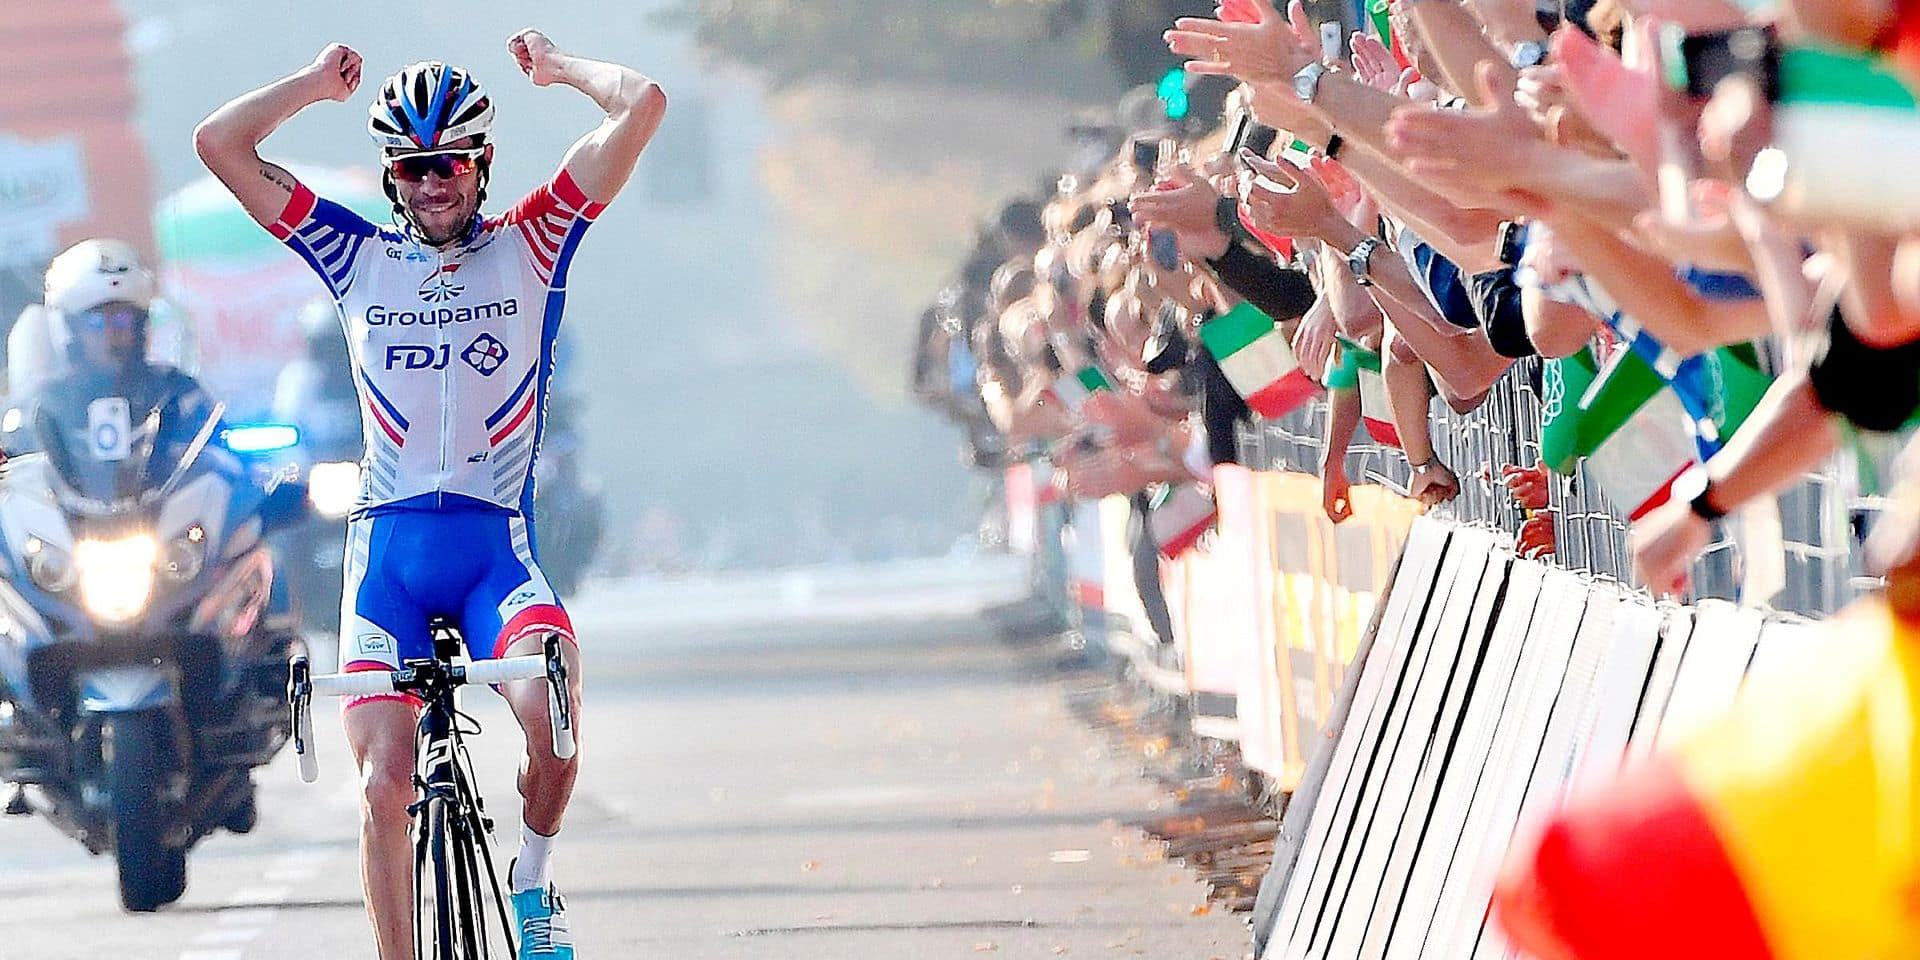 First placed, France's Thibaut Pinot celebrates as he crosses the finish line of the Giro di Lombardia cycling race in Como, Italy, Saturday, Oct. 13, 2018. (Daniel dal Zennaro/ANSA via AP)